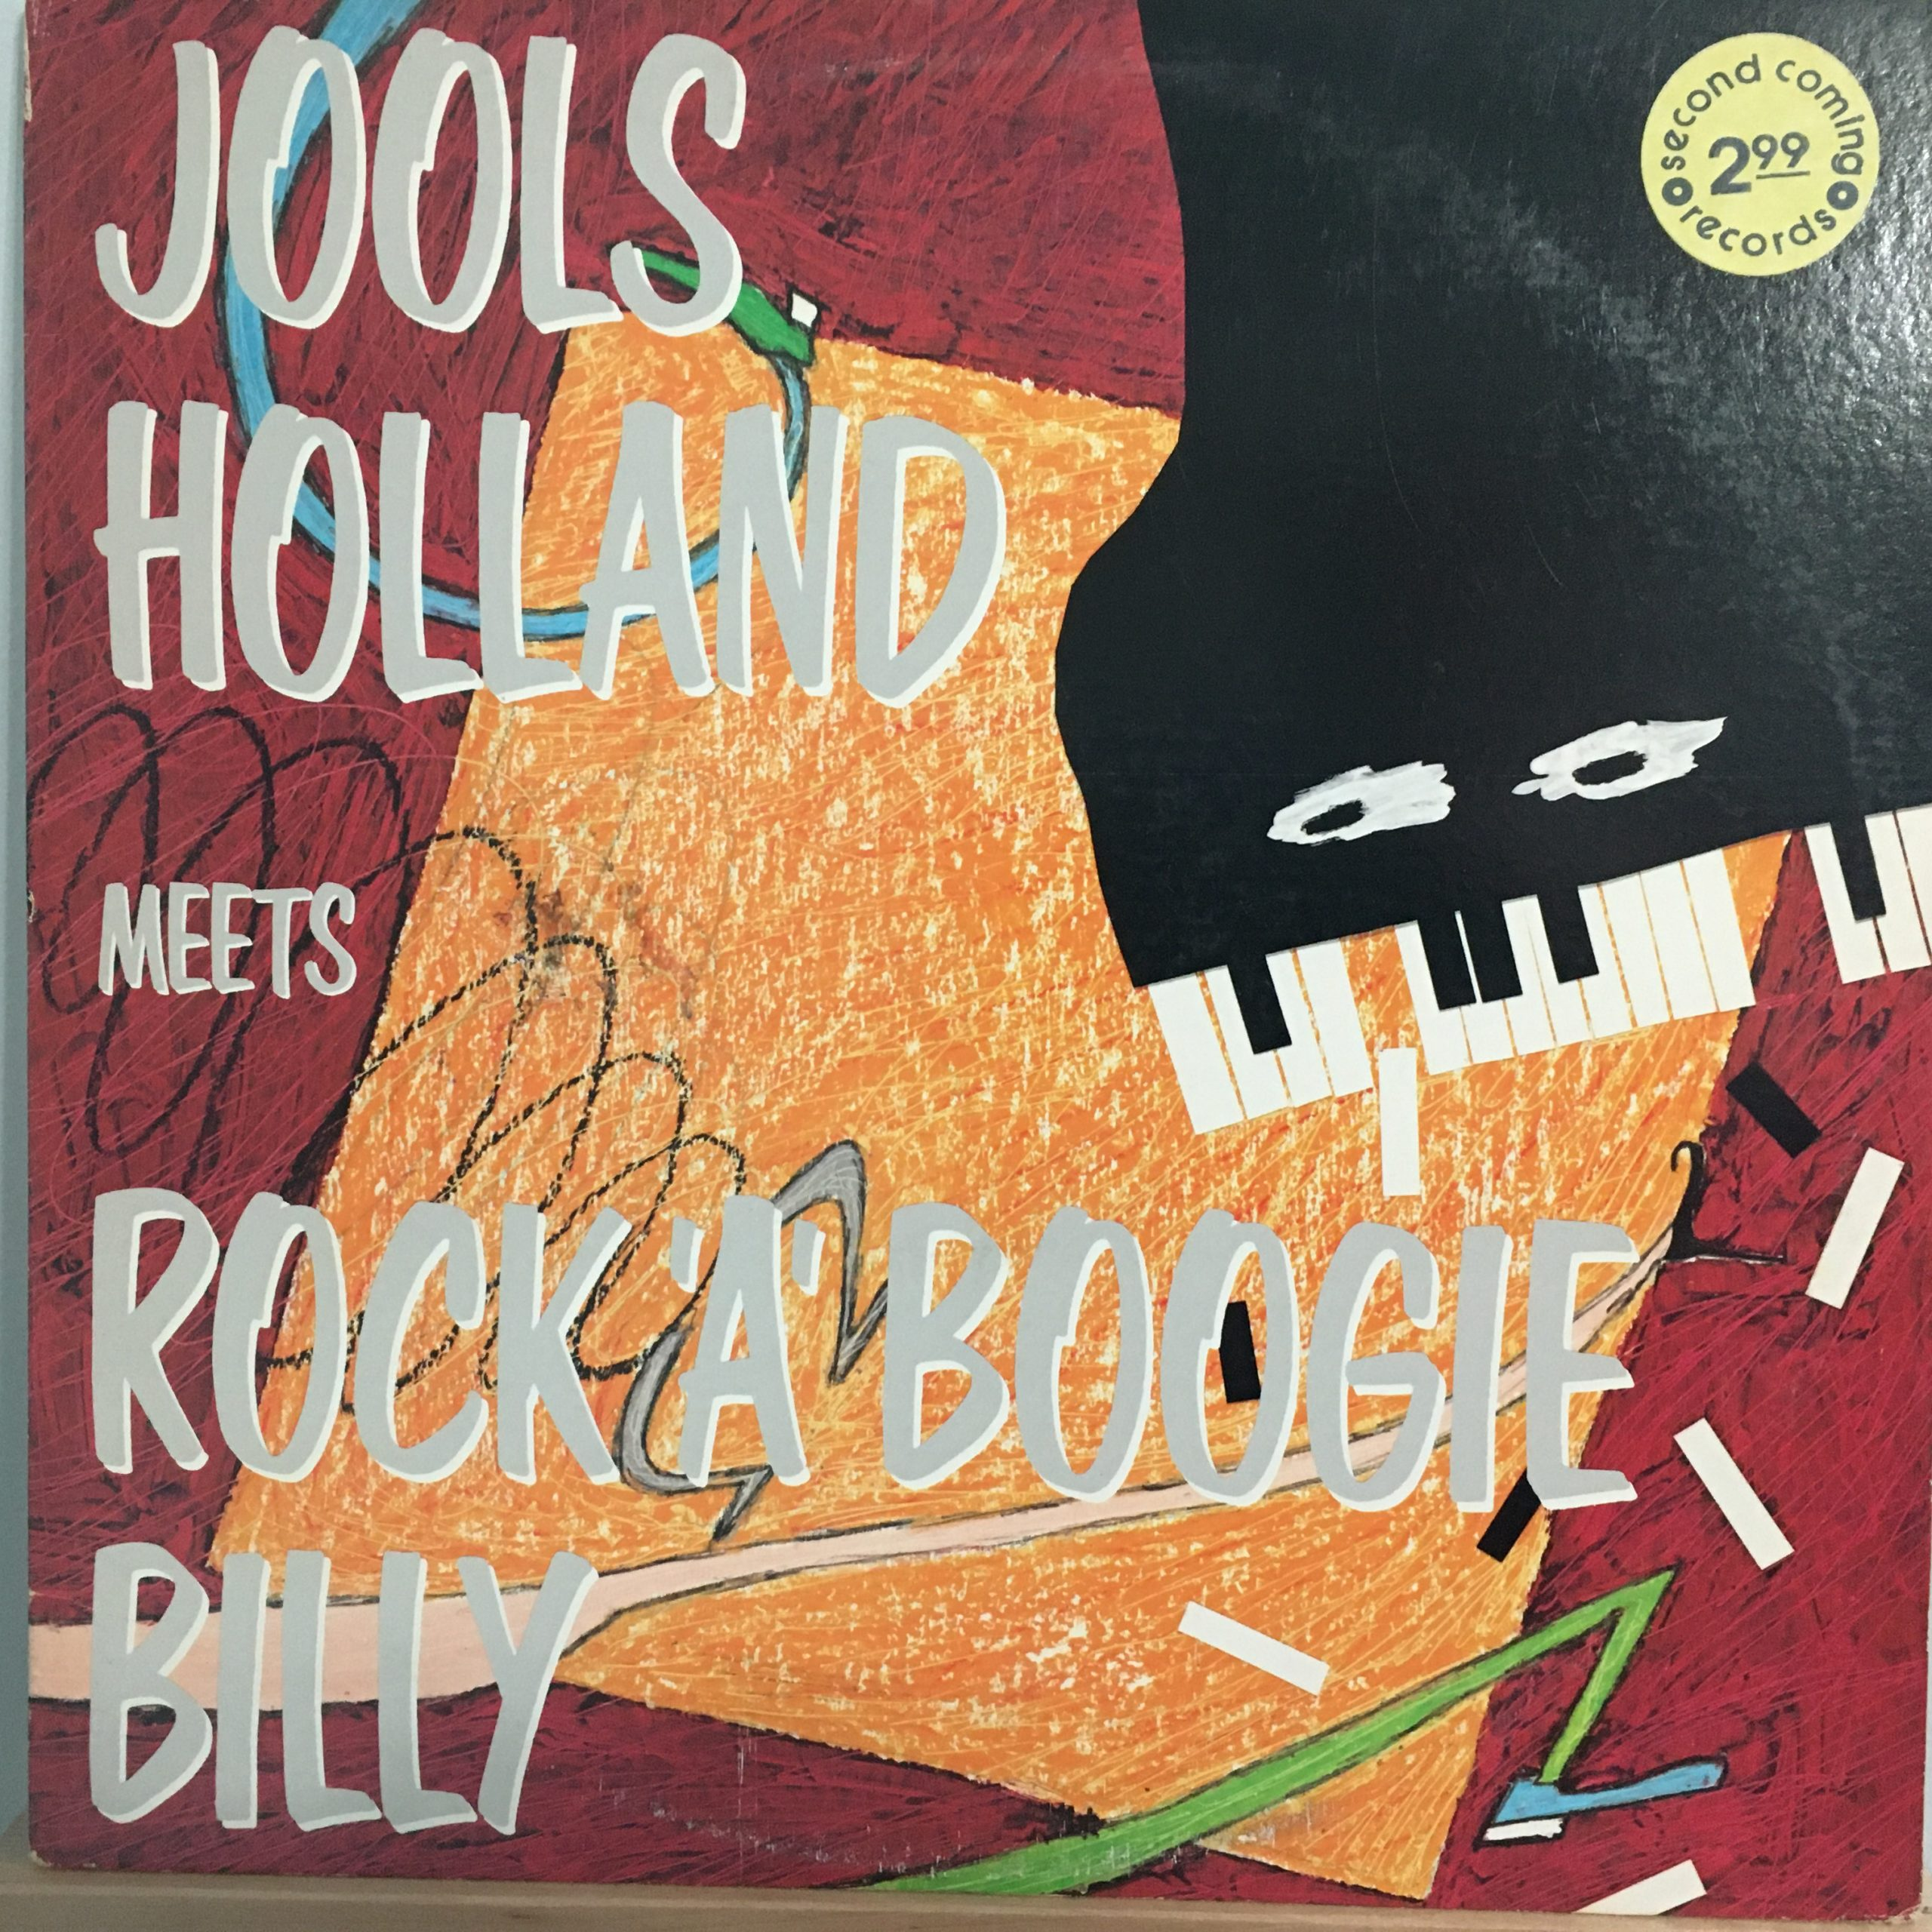 Rock 'a' Boogie Billy front cover